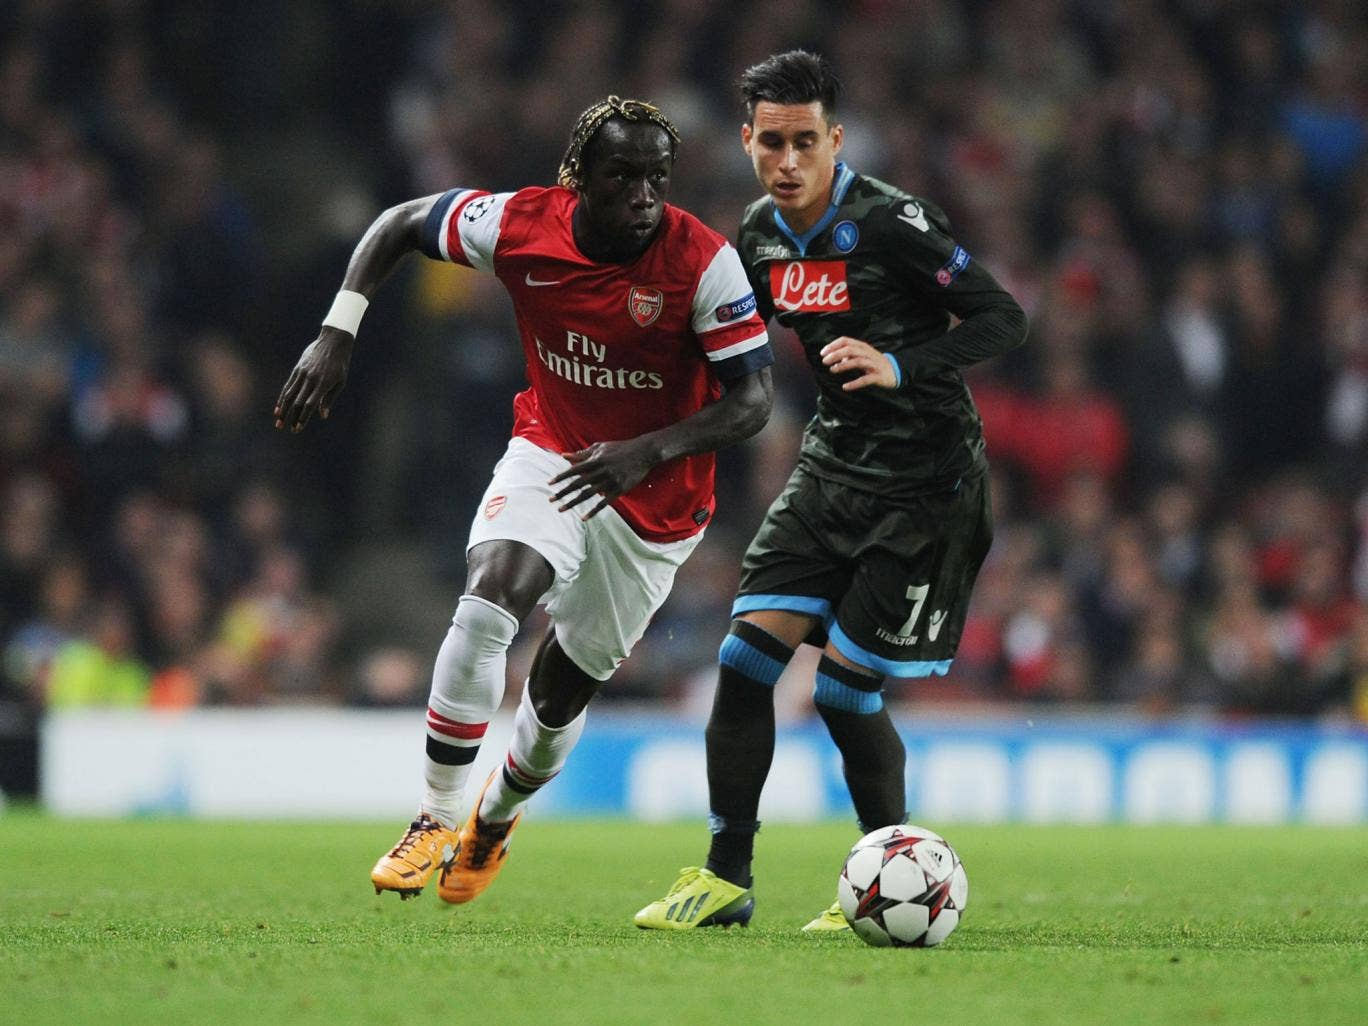 Bacary Sagna has been ruled out for three weeks with a hamstring injury